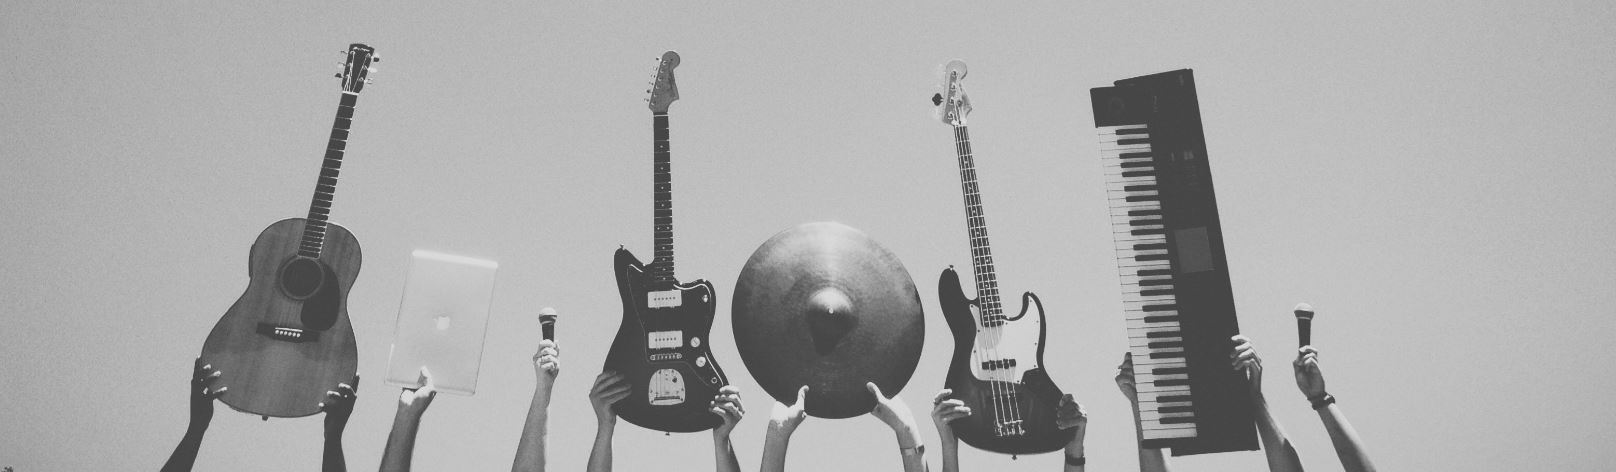 Black and White Photo of Musical Instruments